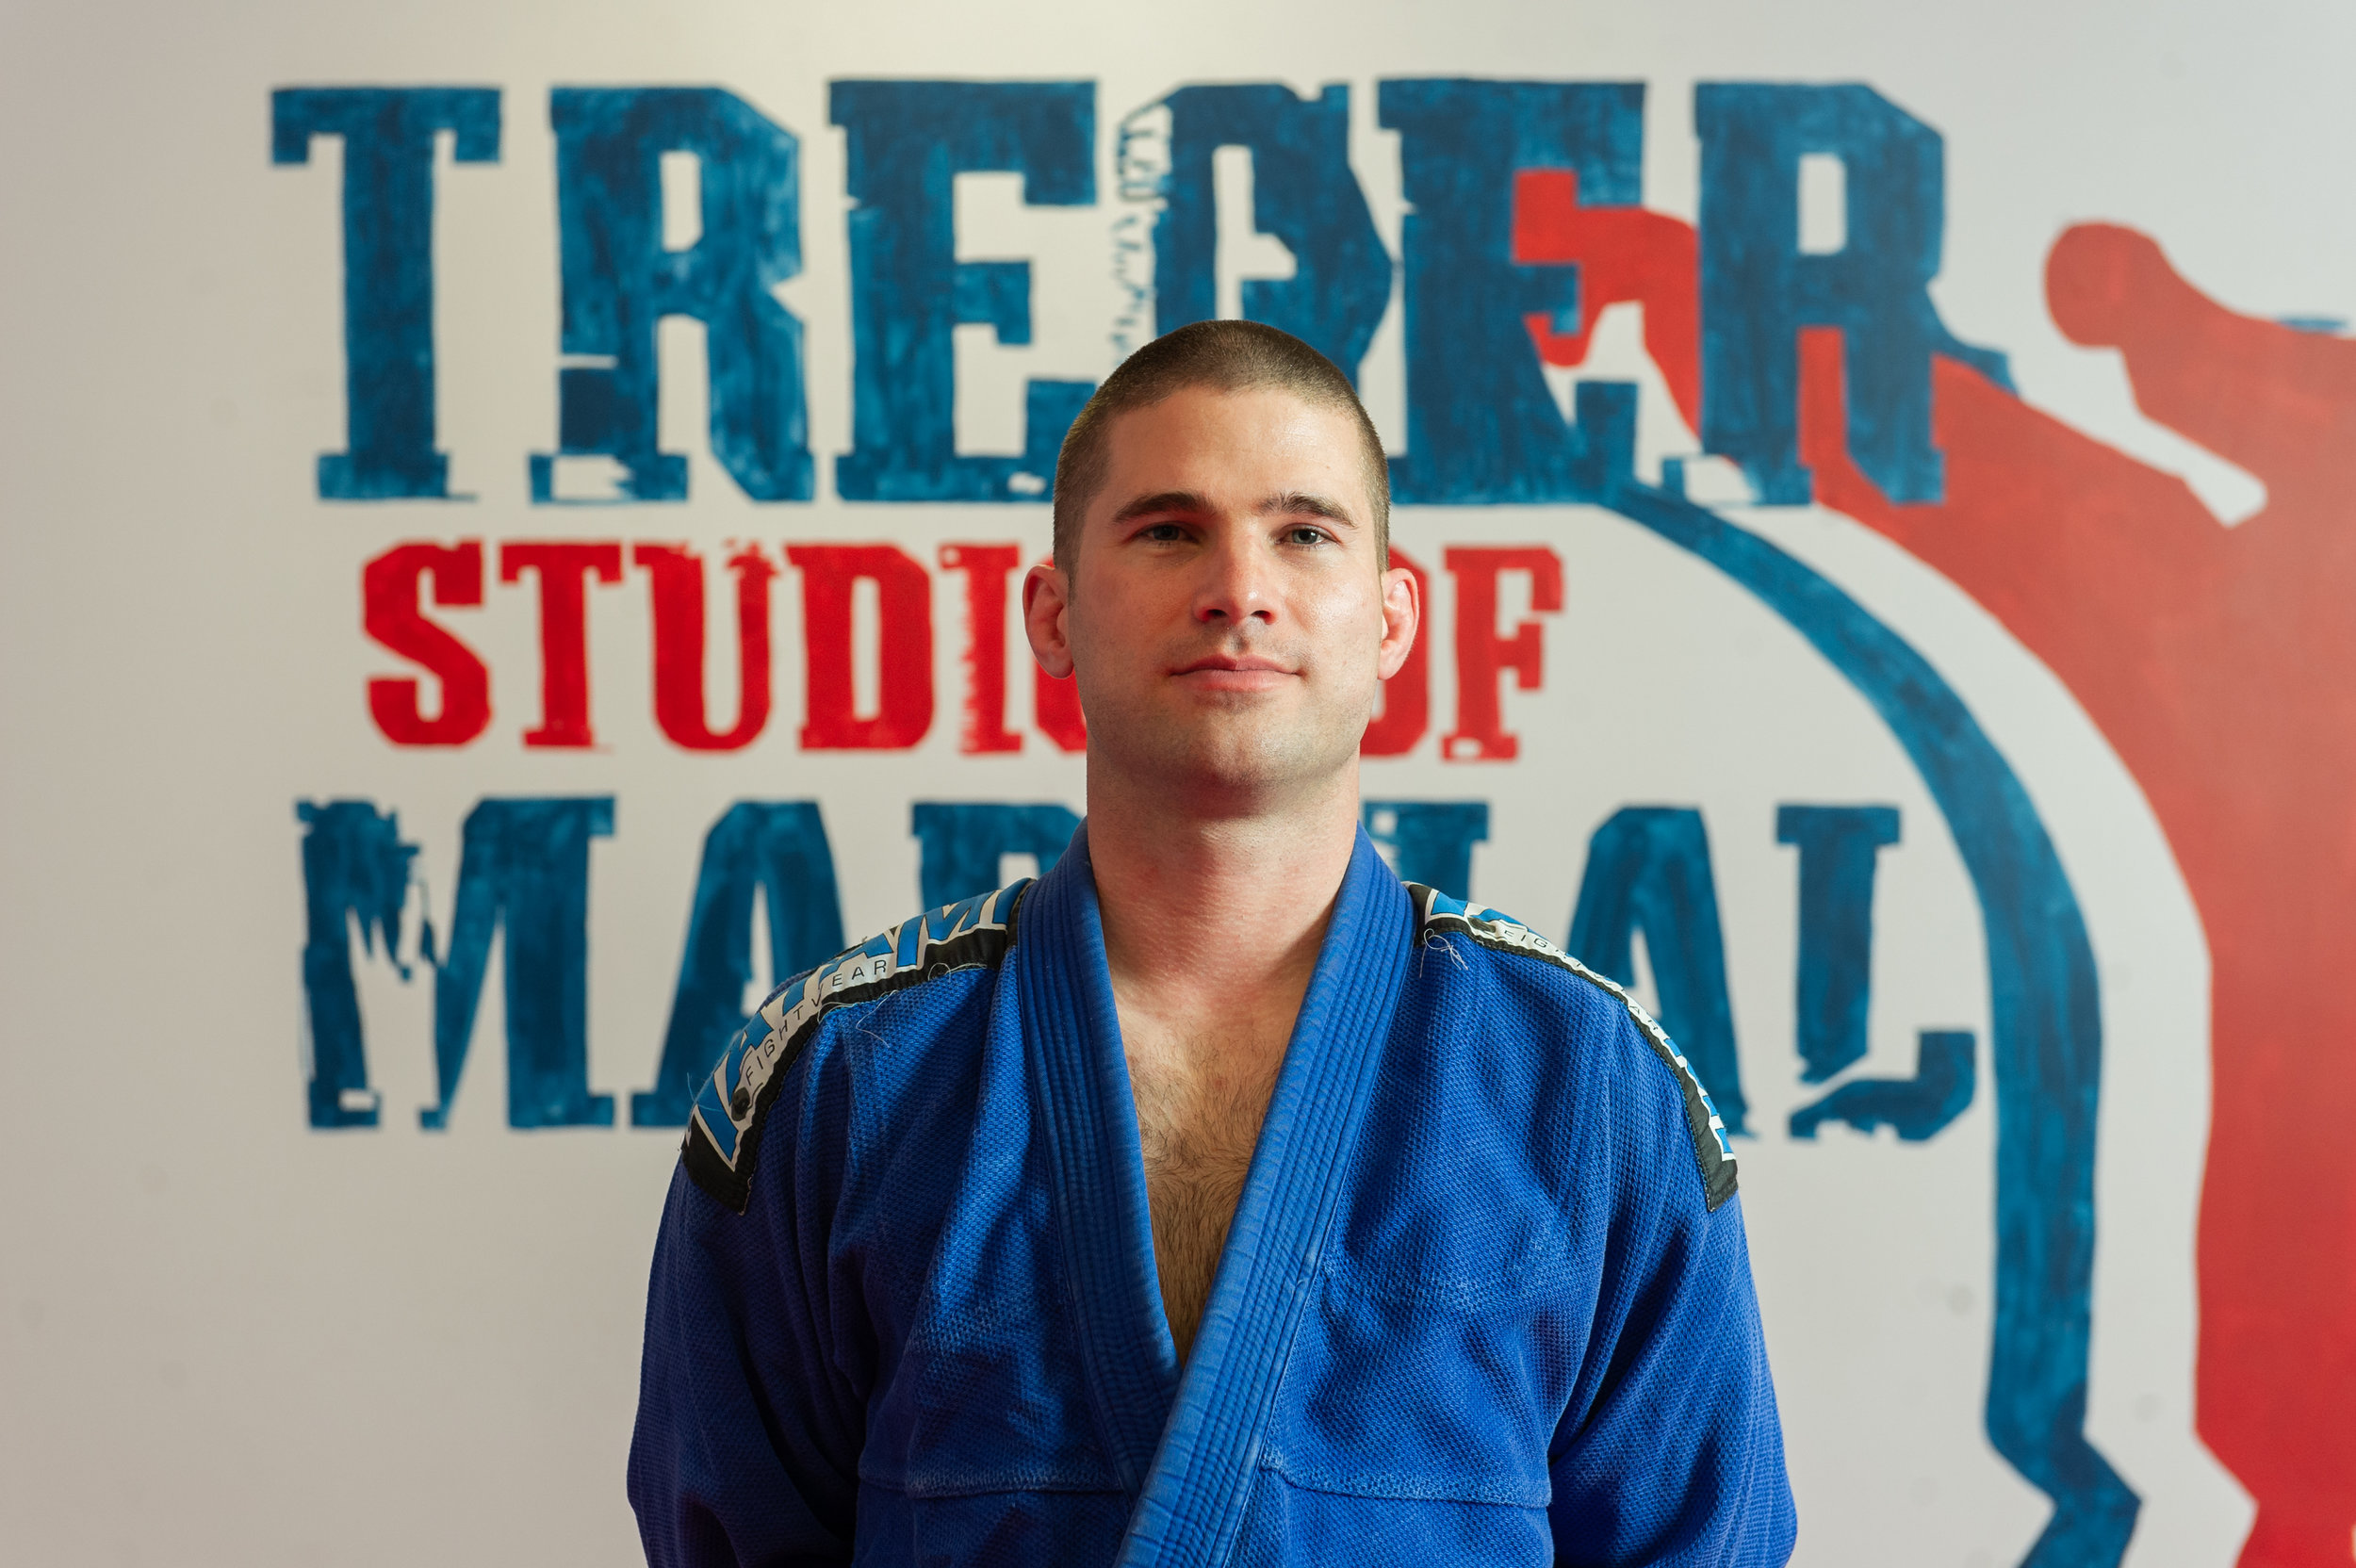 SENSEI STEVEN KECKAN Steven is our Head Brazilian Jiu Jitsu Instructor. He has trained in BJJ for over 15 years and received his black belt in 2013 from Rigan Machado and Ryan Fiorenzi. He enjoys instructing and specializes in the technical aspect of the BJJ. Additionally he holds a 5th dan black belt in American Karate from Master Jeff Duncan.